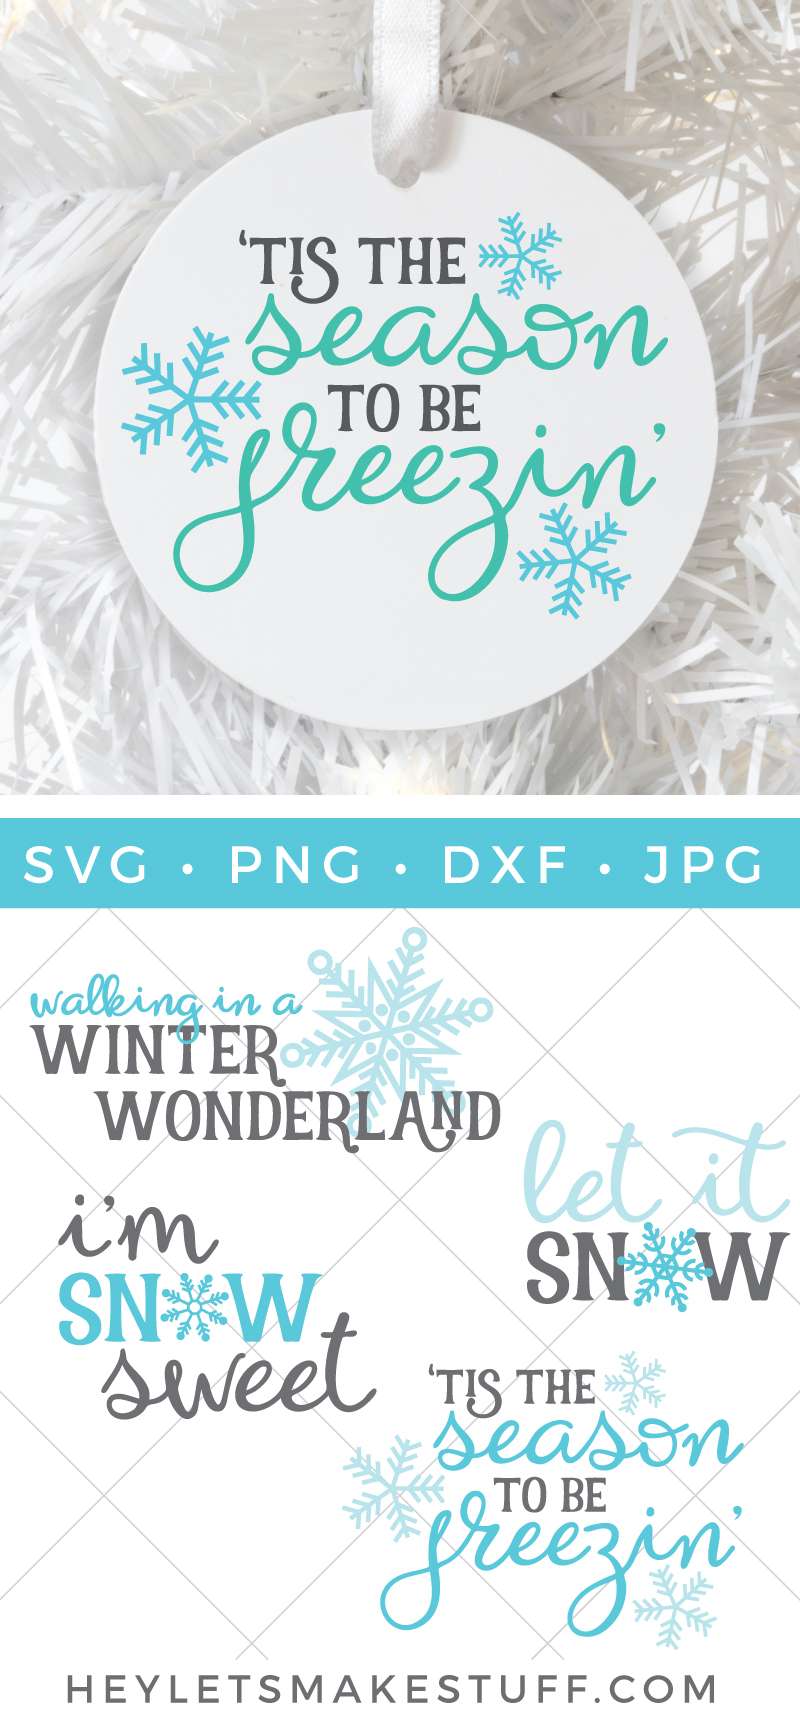 Baby, it's cold outside! The cold weather is the perfect reason to stay indoors & craft! Get inspired with this winter and snow SVG bundle.  via @heyletsmakestuf